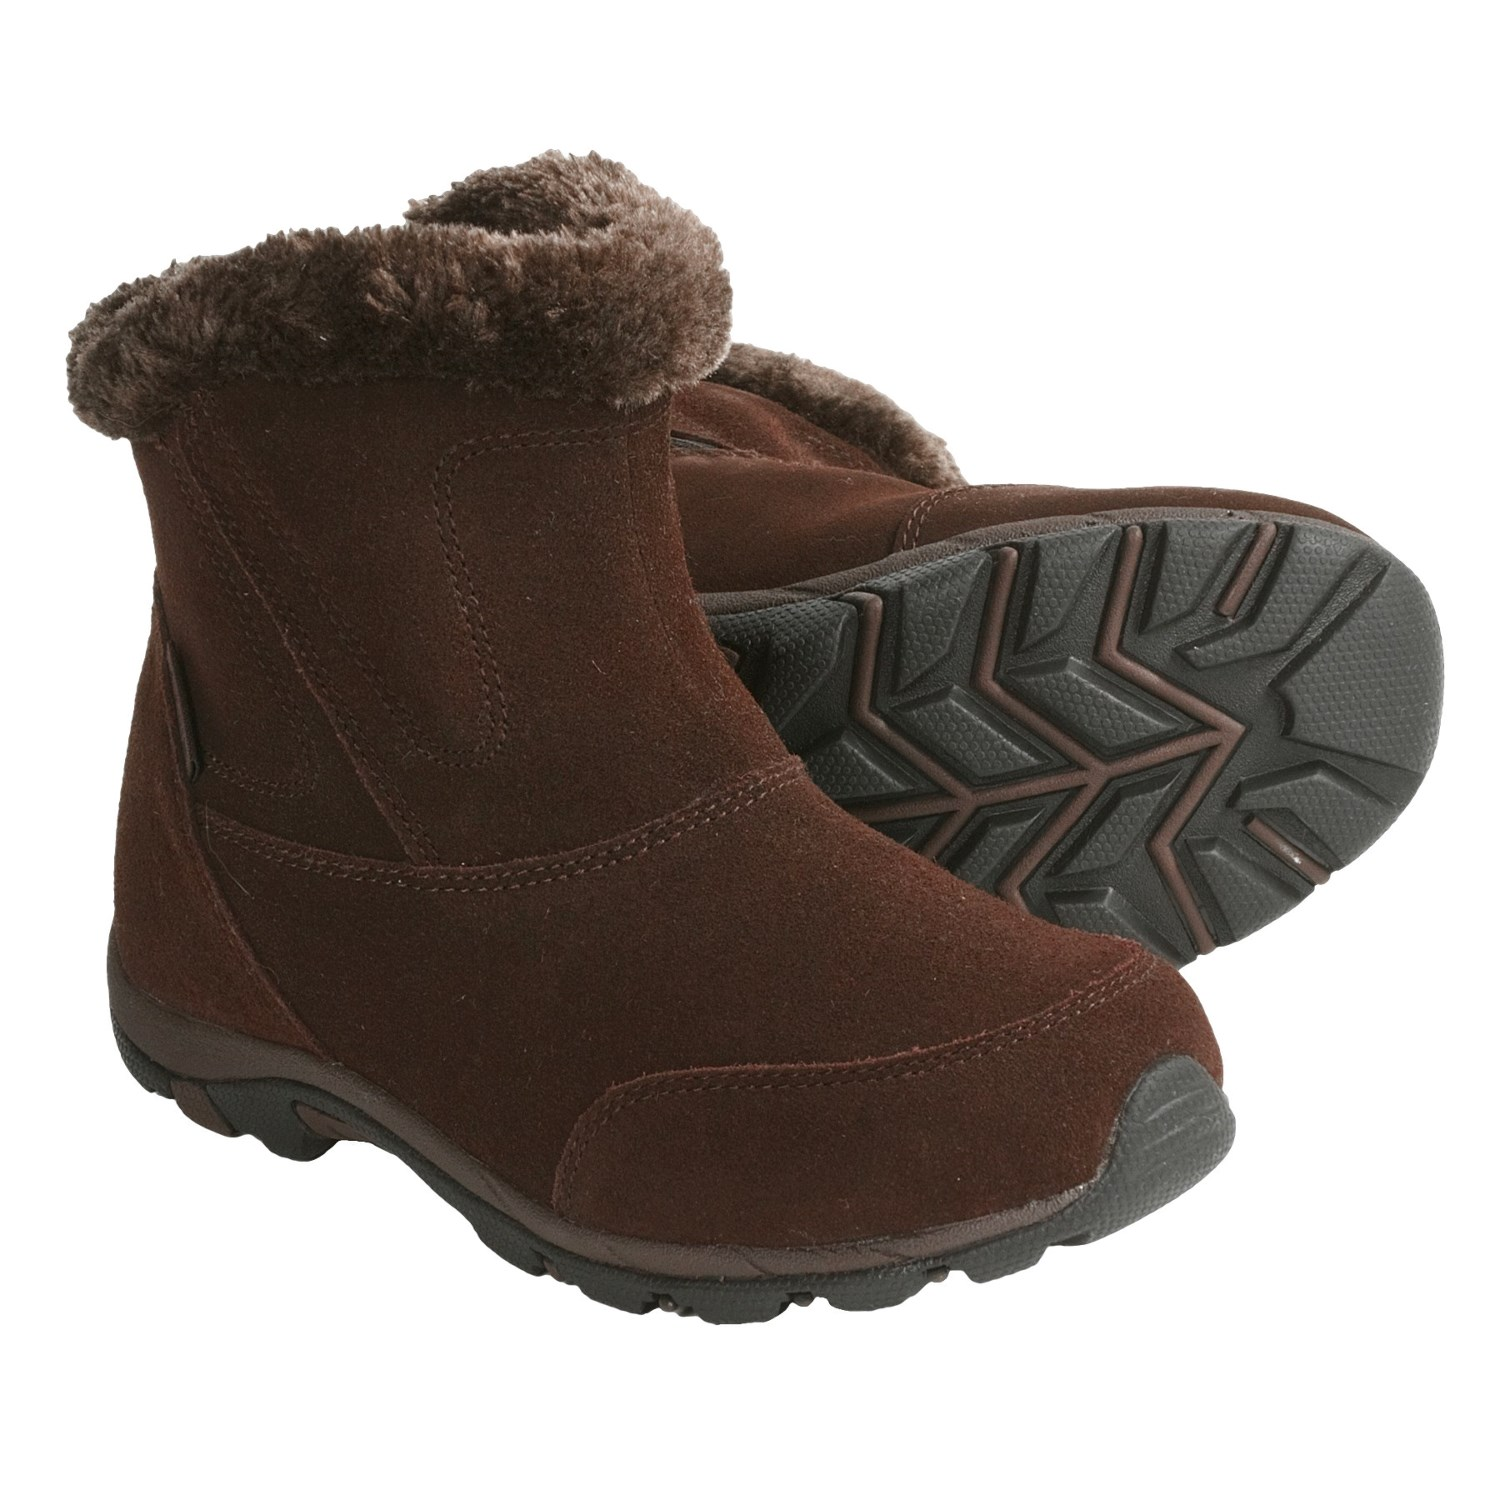 Kamik Montreal Winter Boots - Waterproof, Insulated (For